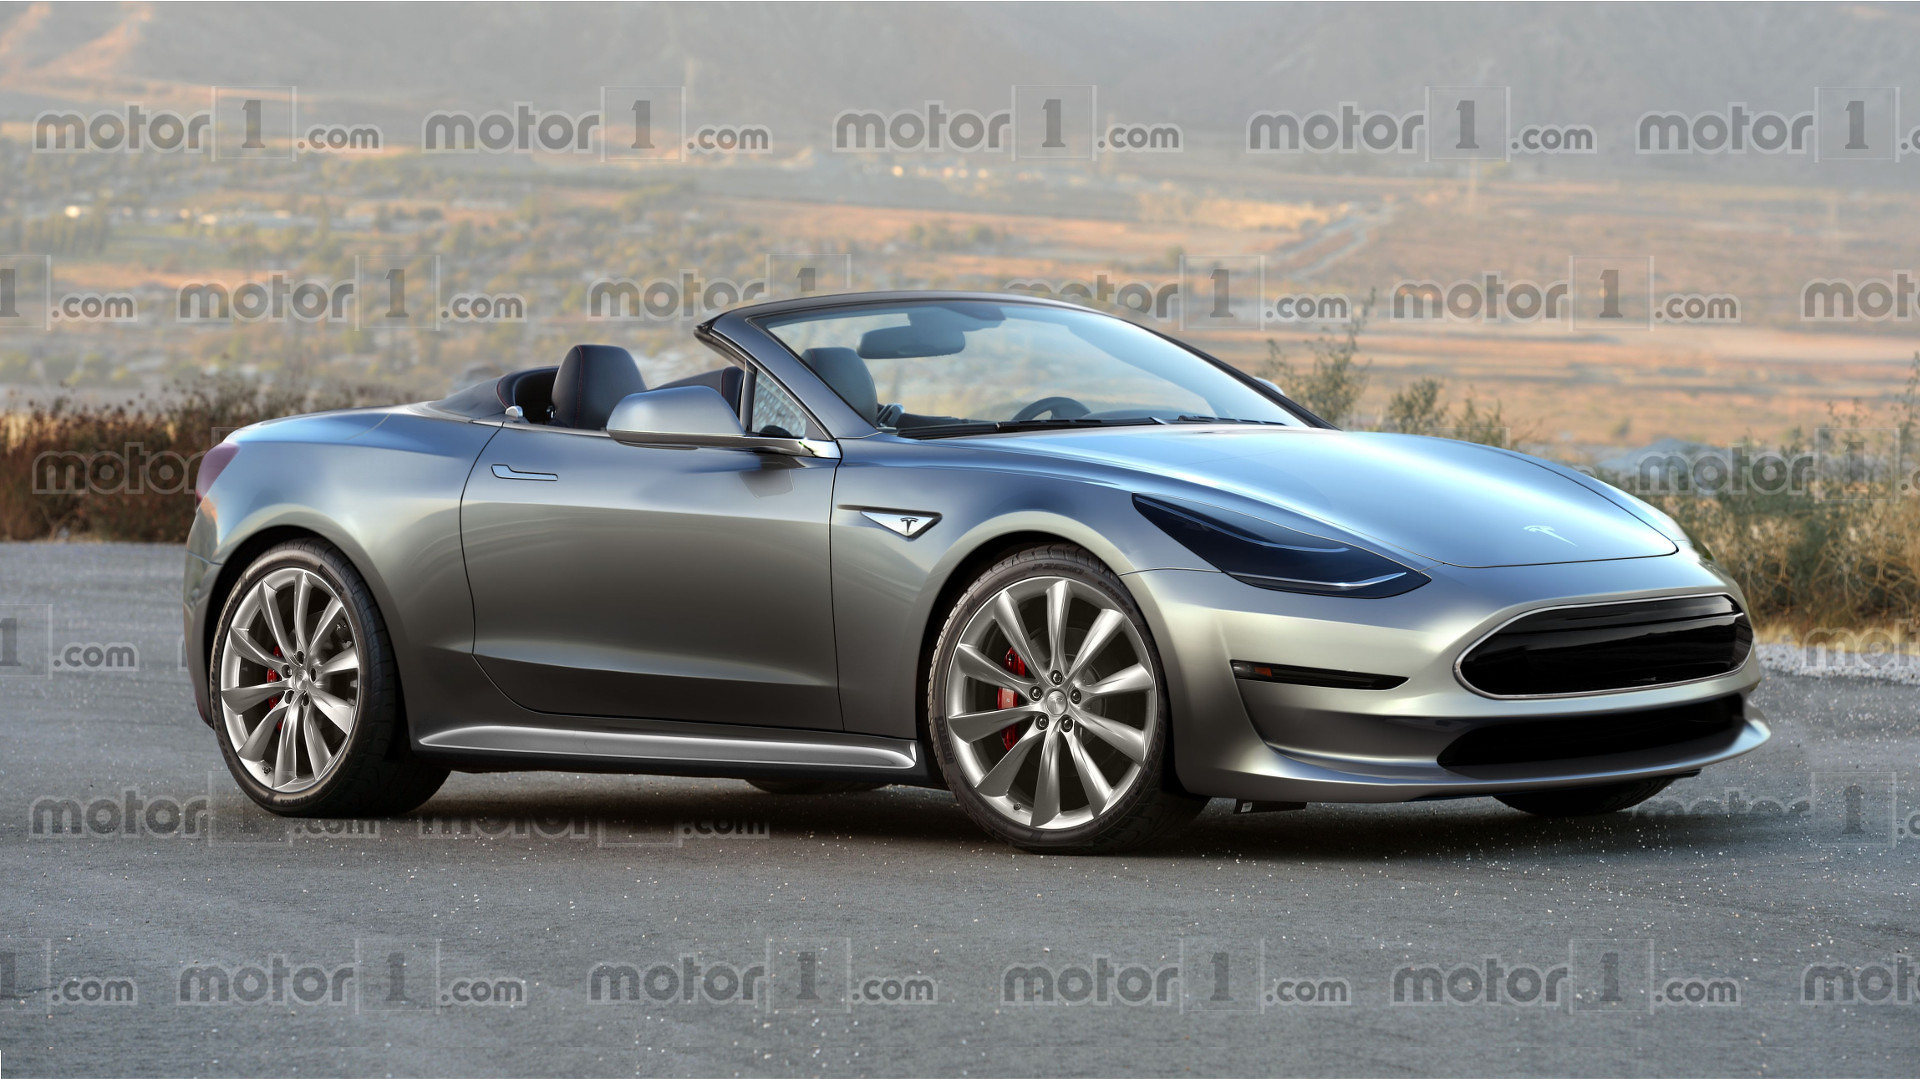 New Tesla Roadster Could Hit 60 Mph In Under 2 Seconds